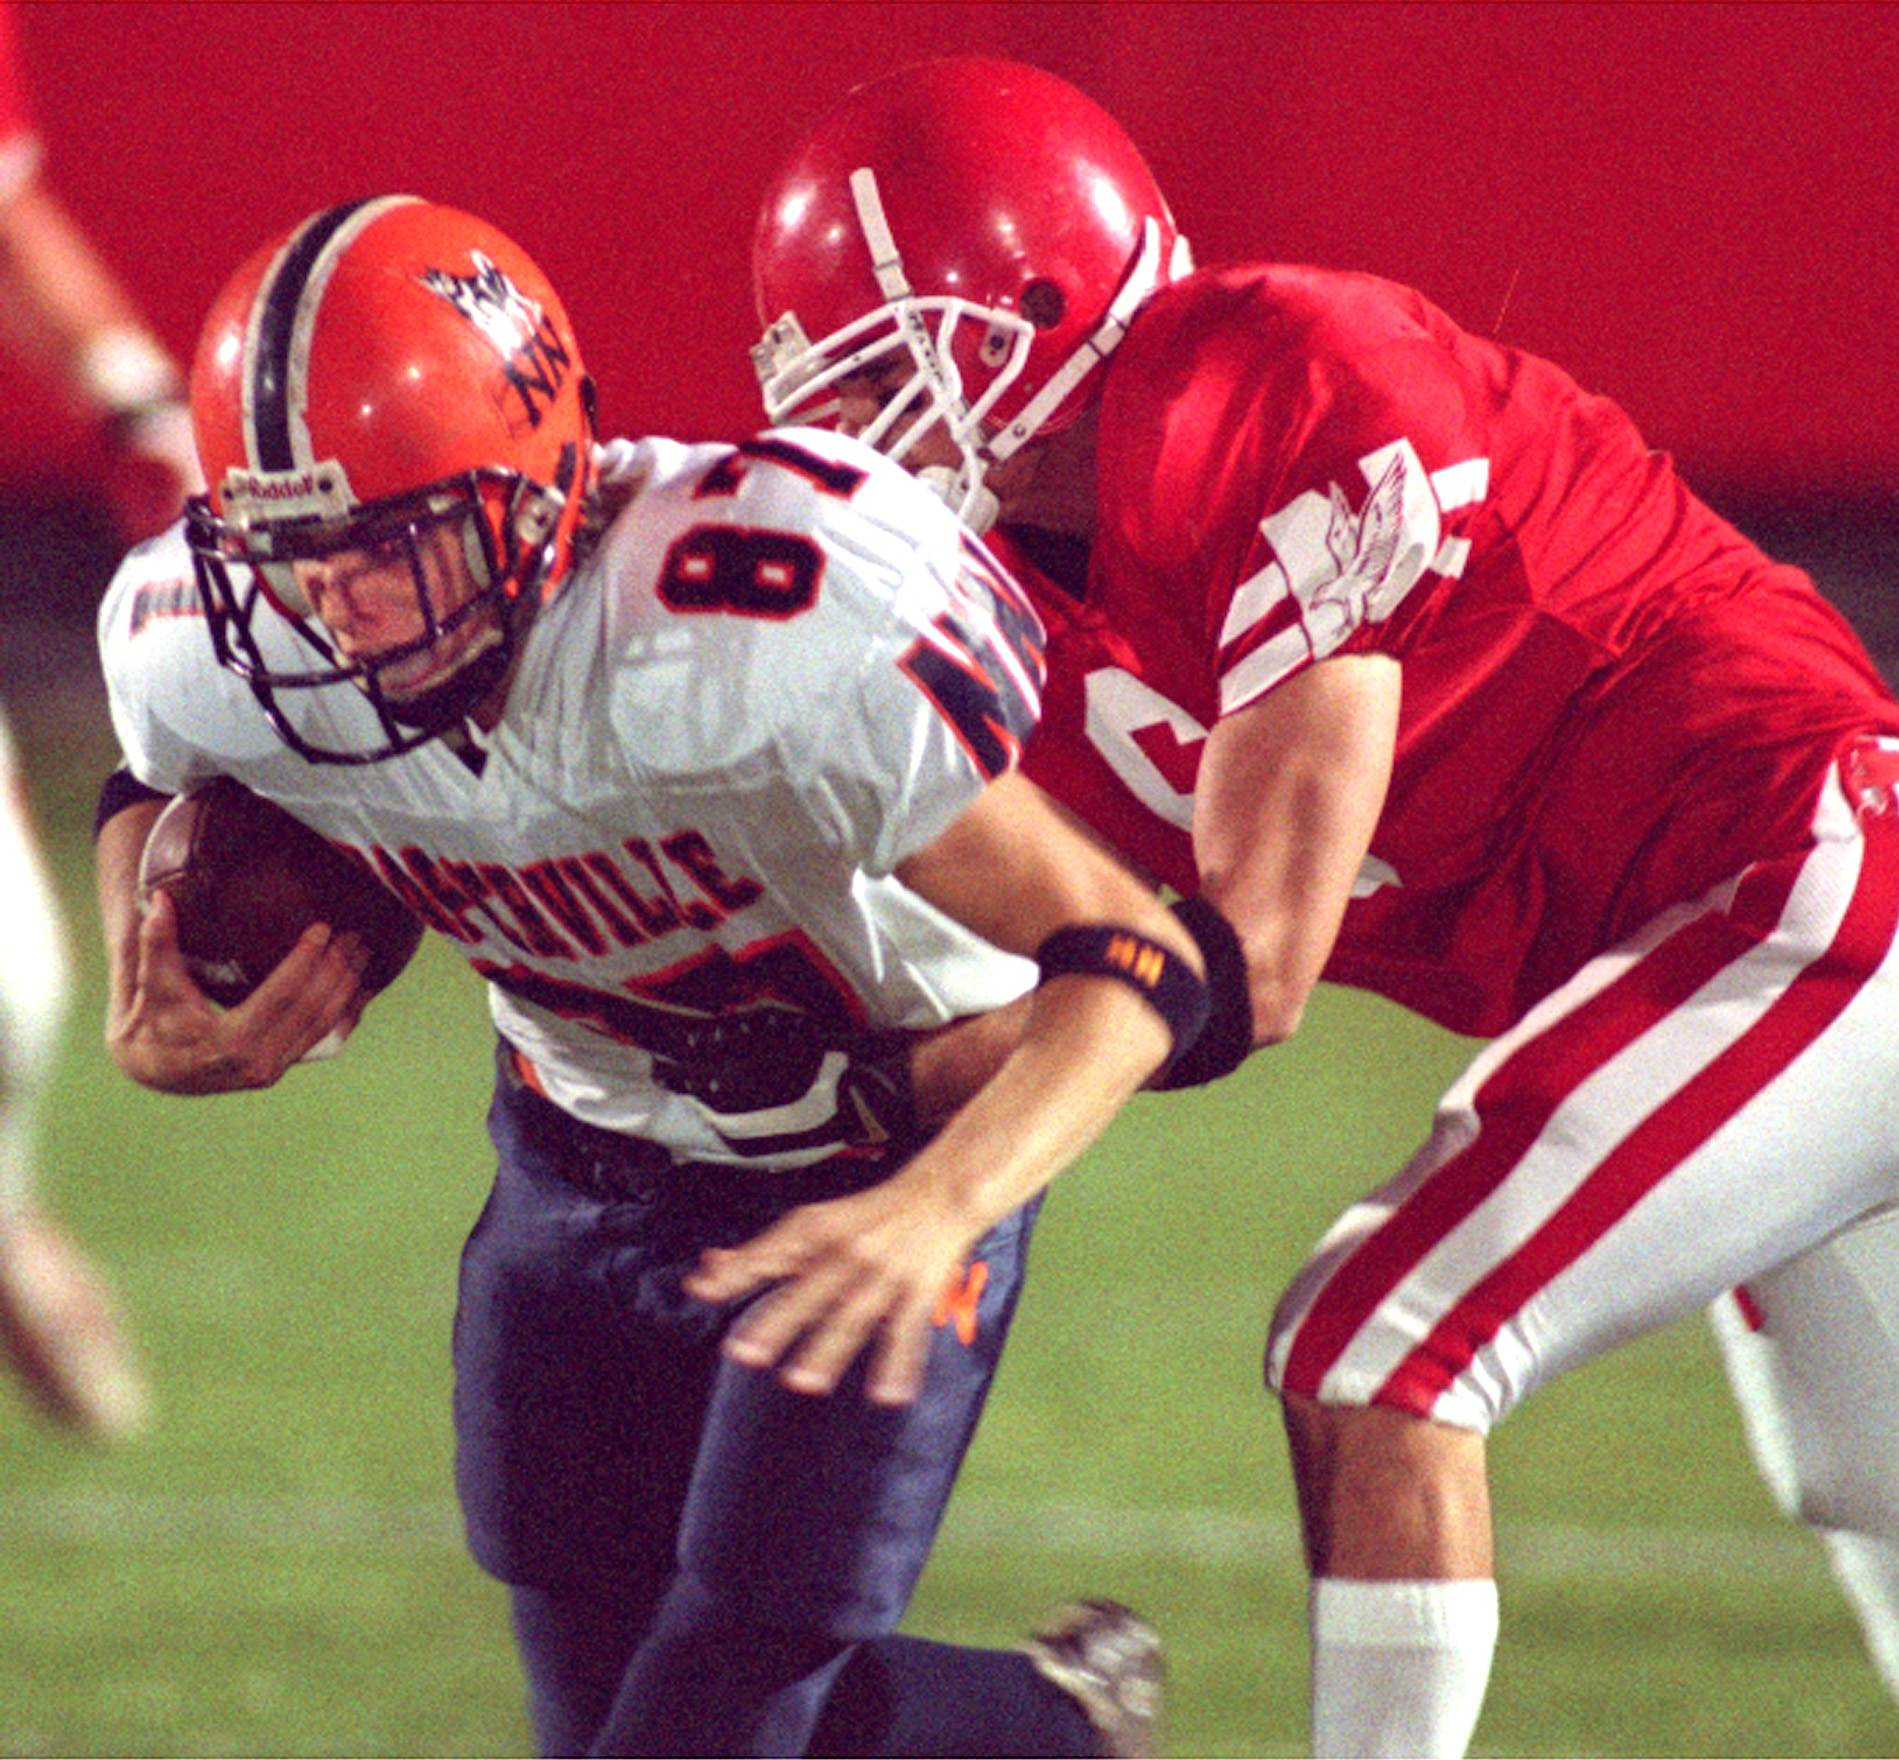 Naperville Unit District 203 is looking to formalize IHSA guidelines on handling concussions for athletes, and it's considering concussions' effect on their studies, too.